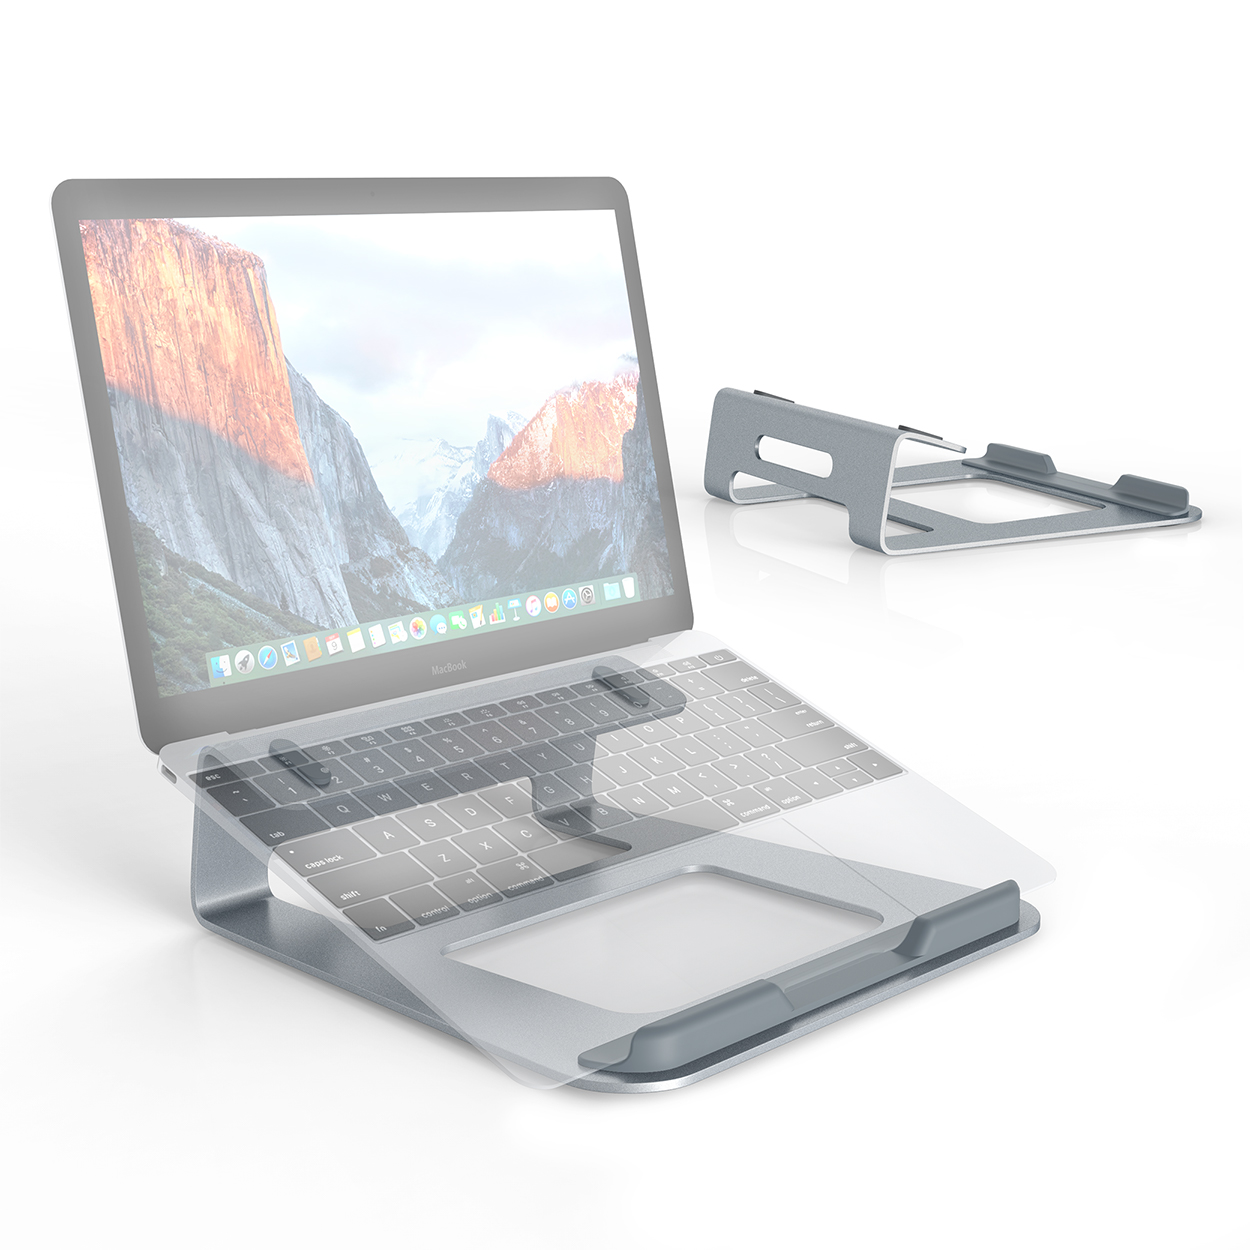 "SLYPNOS Aluminium Wedge Laptop Stand Cooling Ventilated Portable Tilted Elevated Laptop Riser with Non-Slip Pads and Front Lip for 11""-15.4"" Laptop Notebook Tablet, Silver"